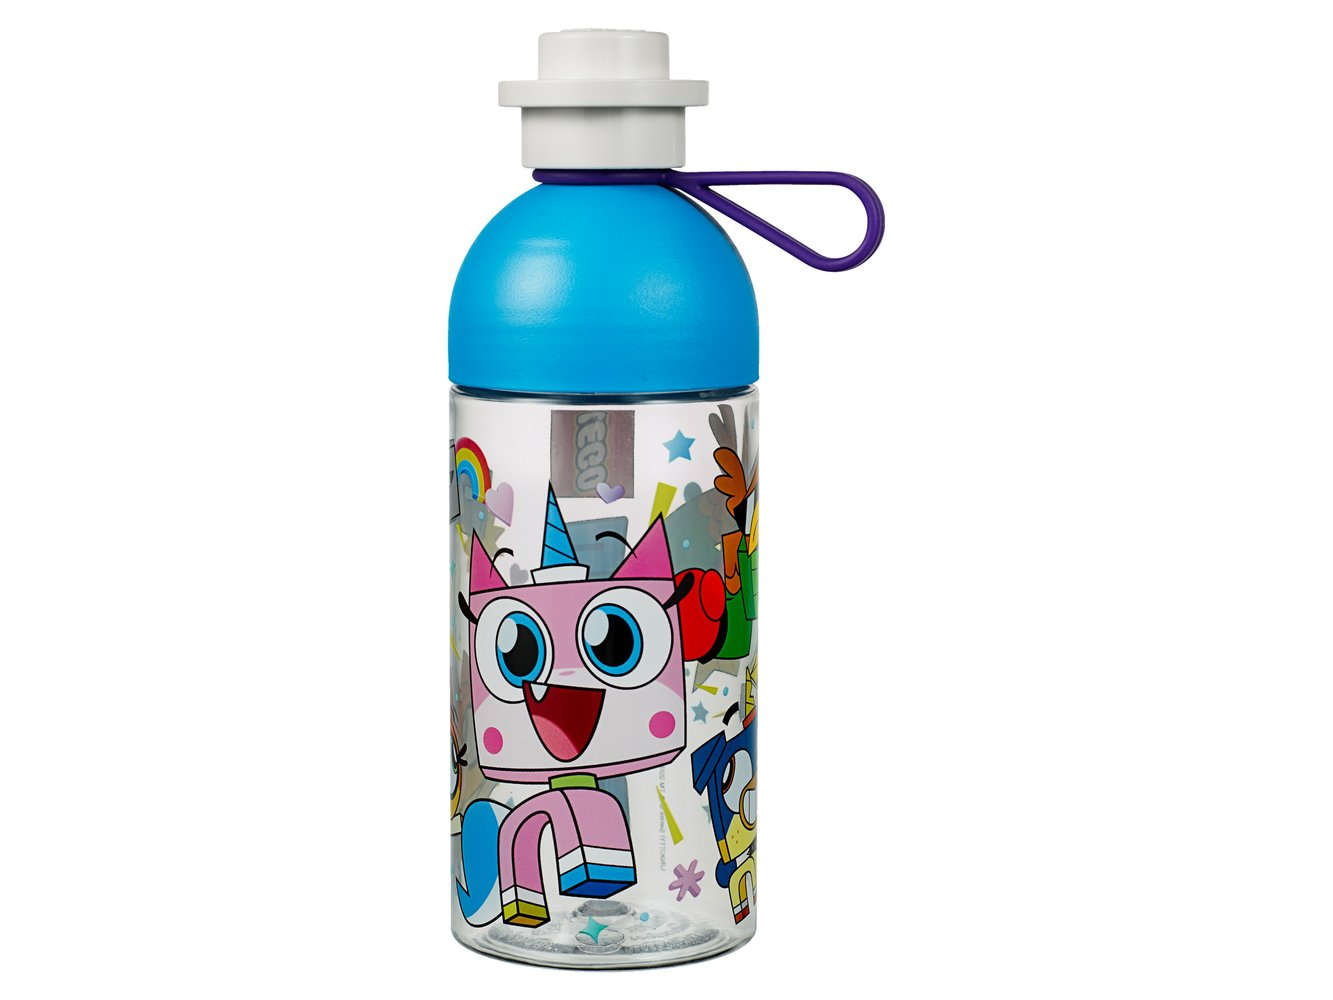 Unikitty Hydration Bottle